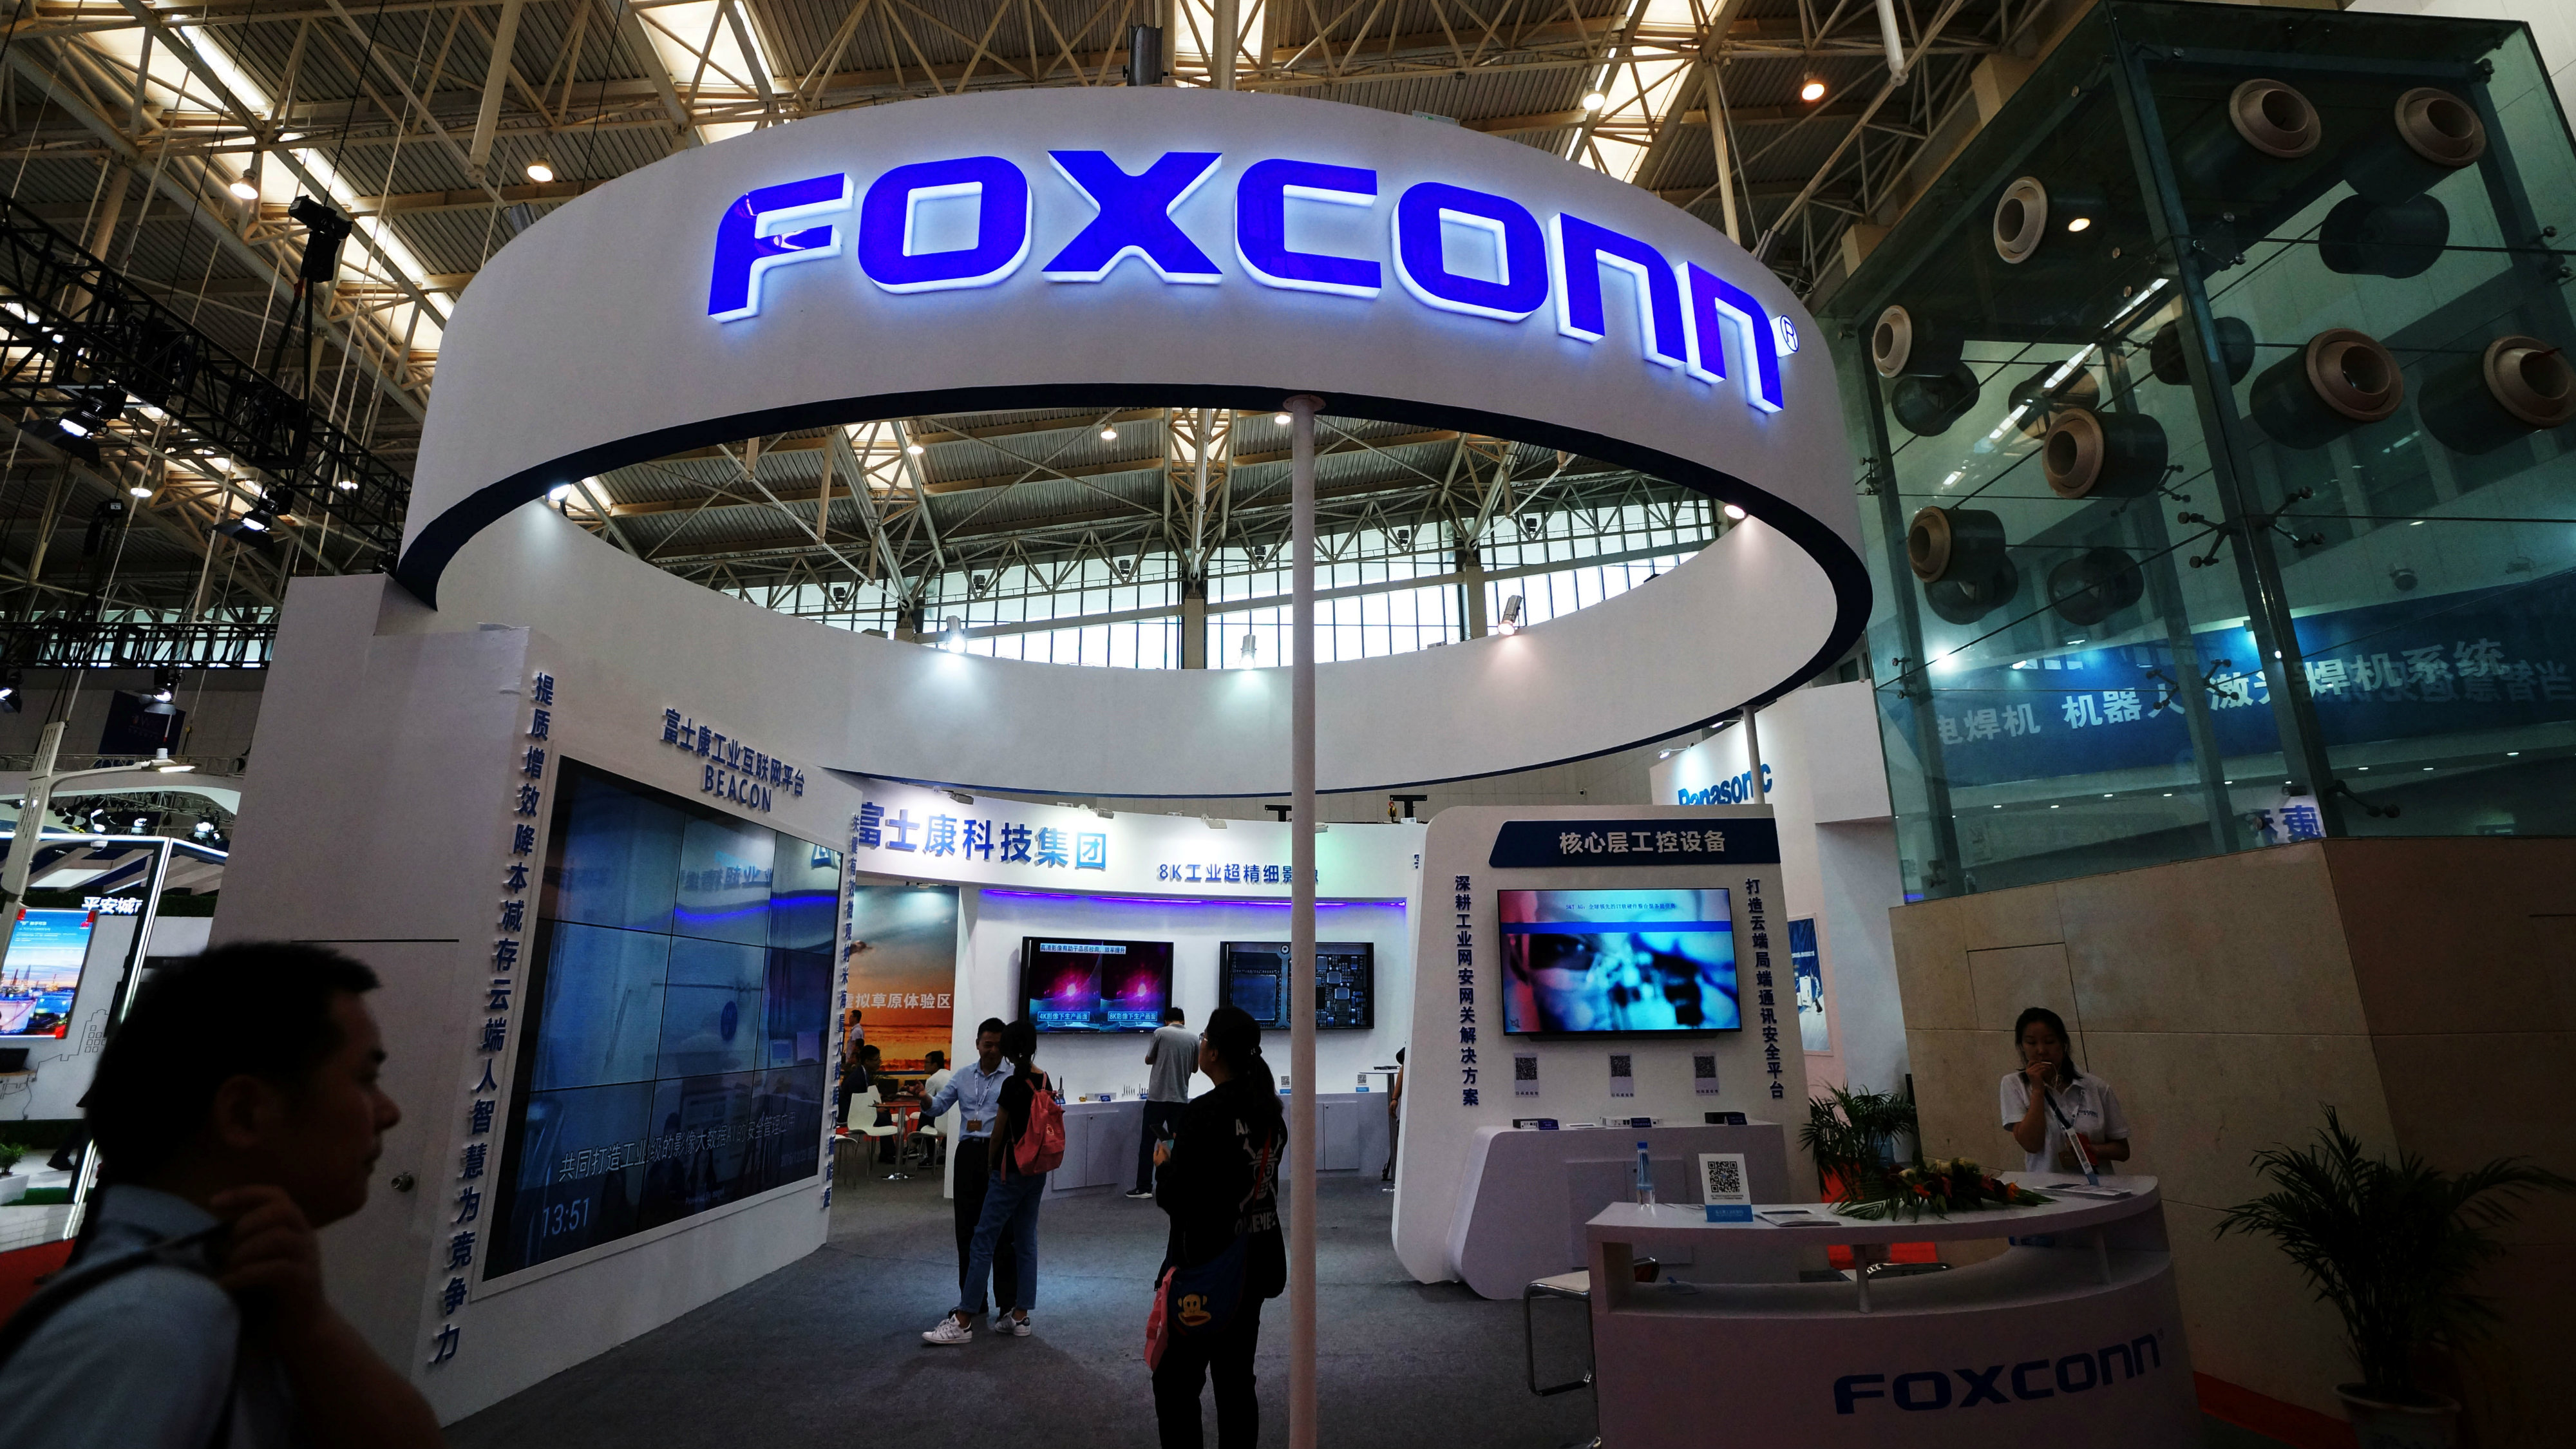 Visitors are seen at a Foxconn booth at the World Intelligence Congress in Tianjin, China May 19, 2018.